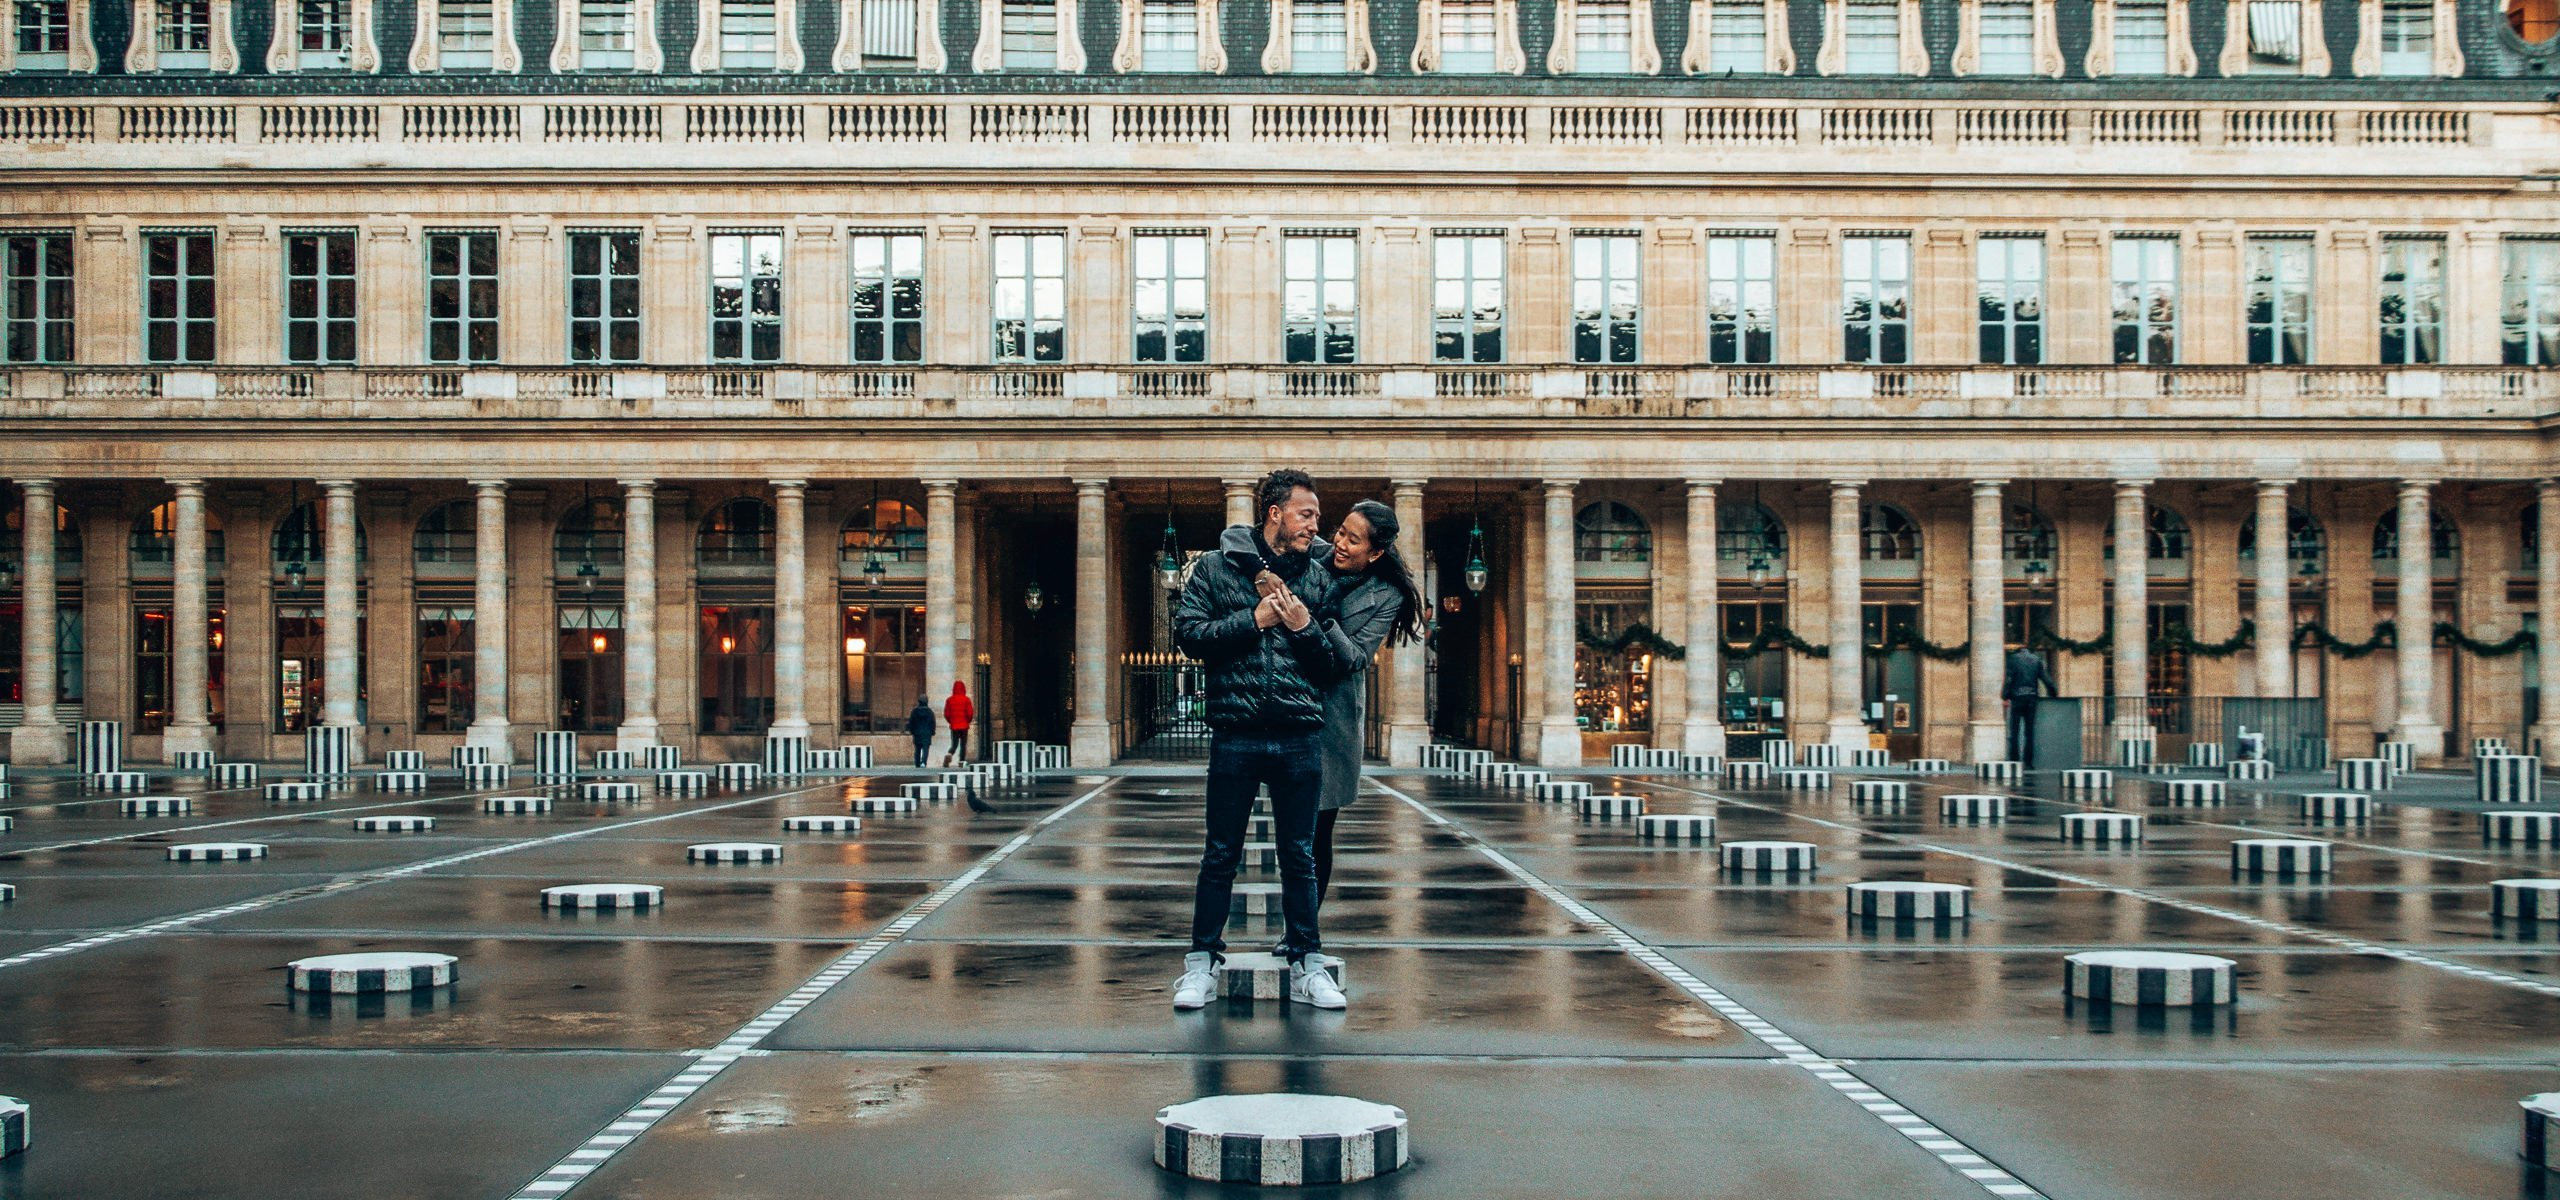 A woman wraps her arms around a man at Palais Royale, Paris - 5 Tips When Dating and Travelling